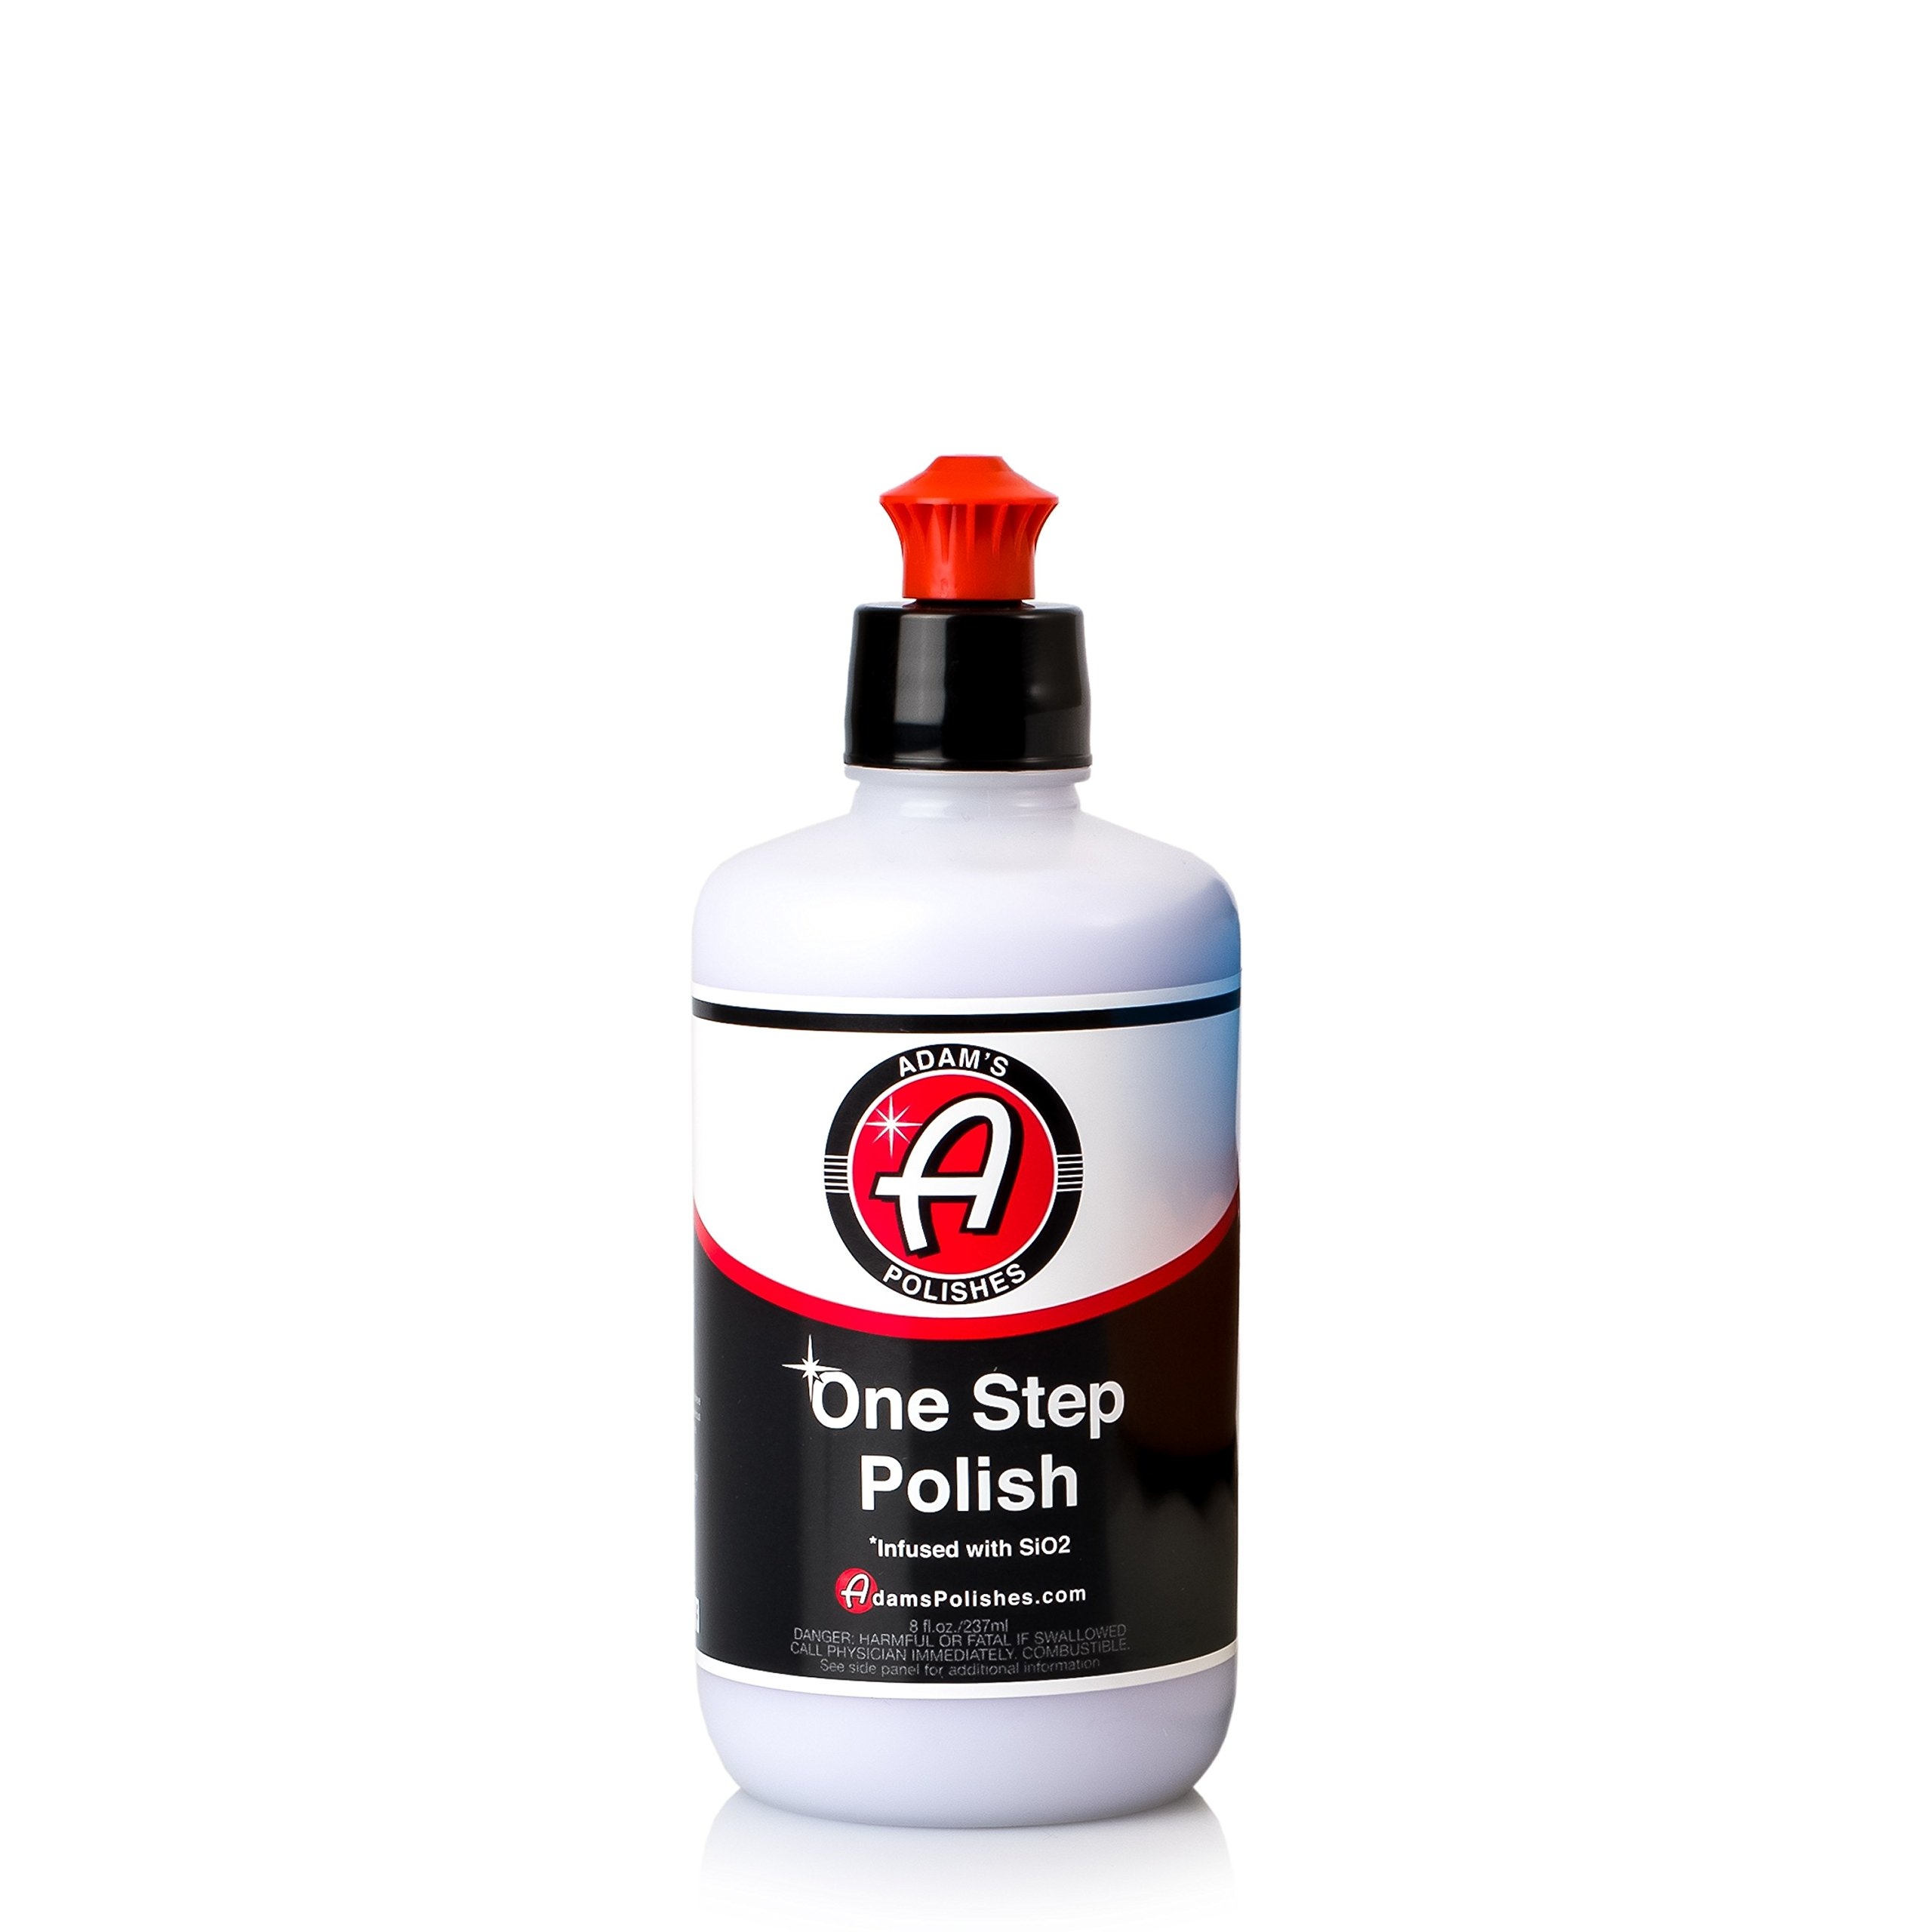 Adam's One Step Polish 8oz - Safe for Clear Coat, Single Stage, or Lacquer Paint - Infused with SiO2 Silica to Add Protection While Polishing - Easy Application and Removal, Excellent Shine